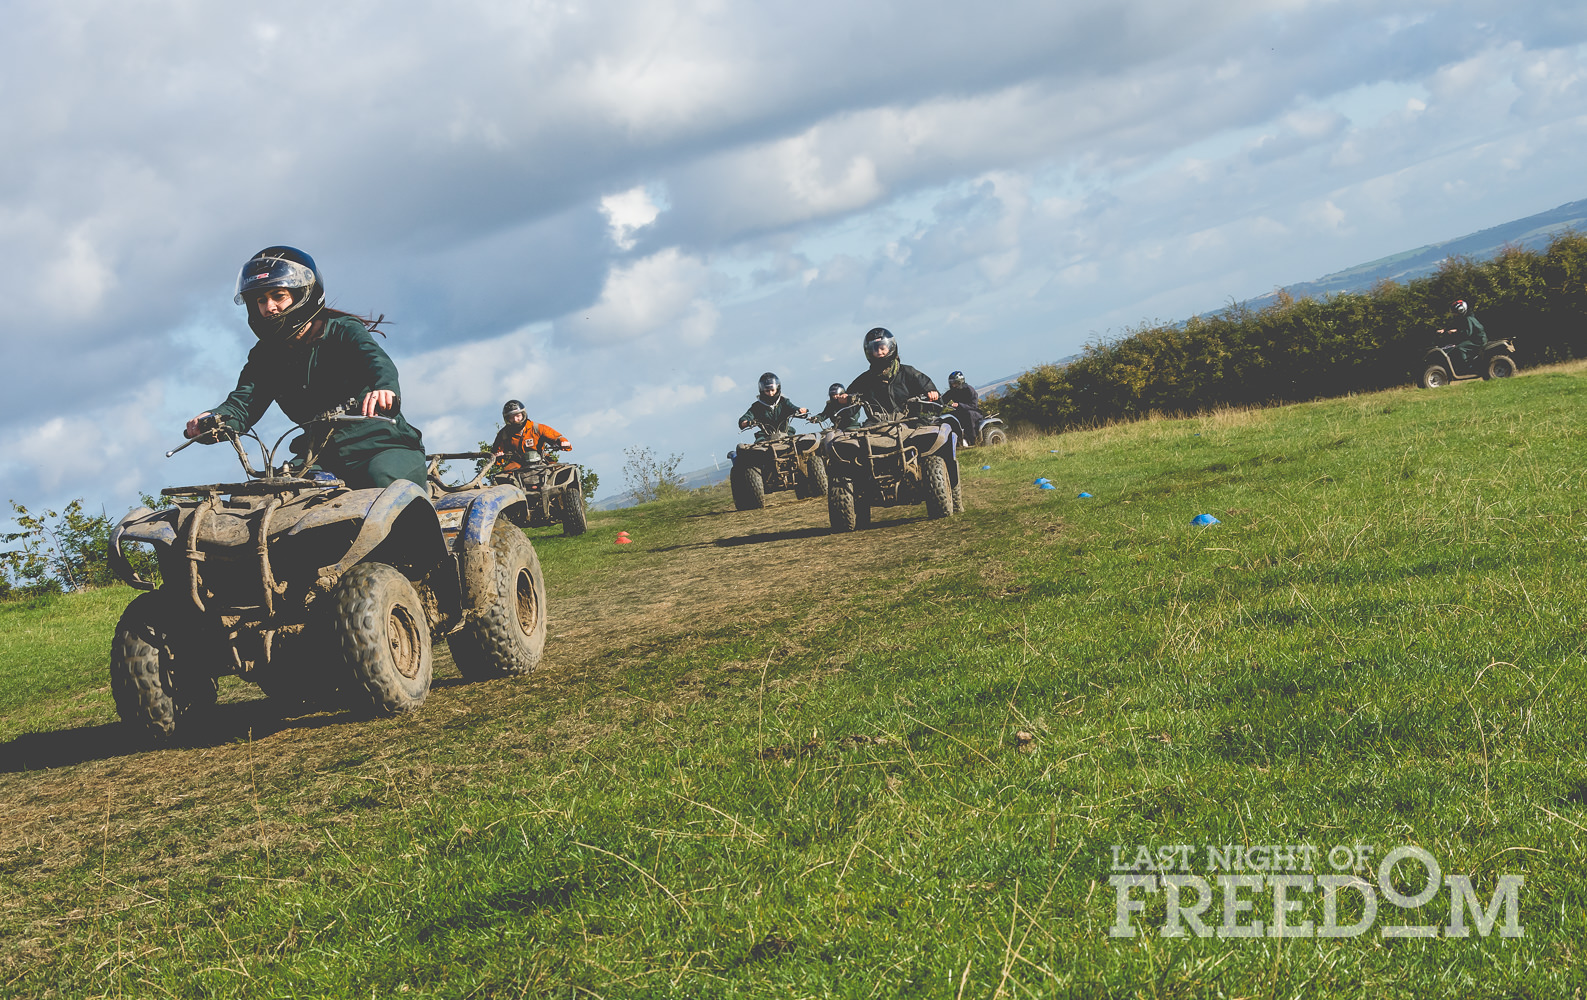 Seven people racing on quad bikes